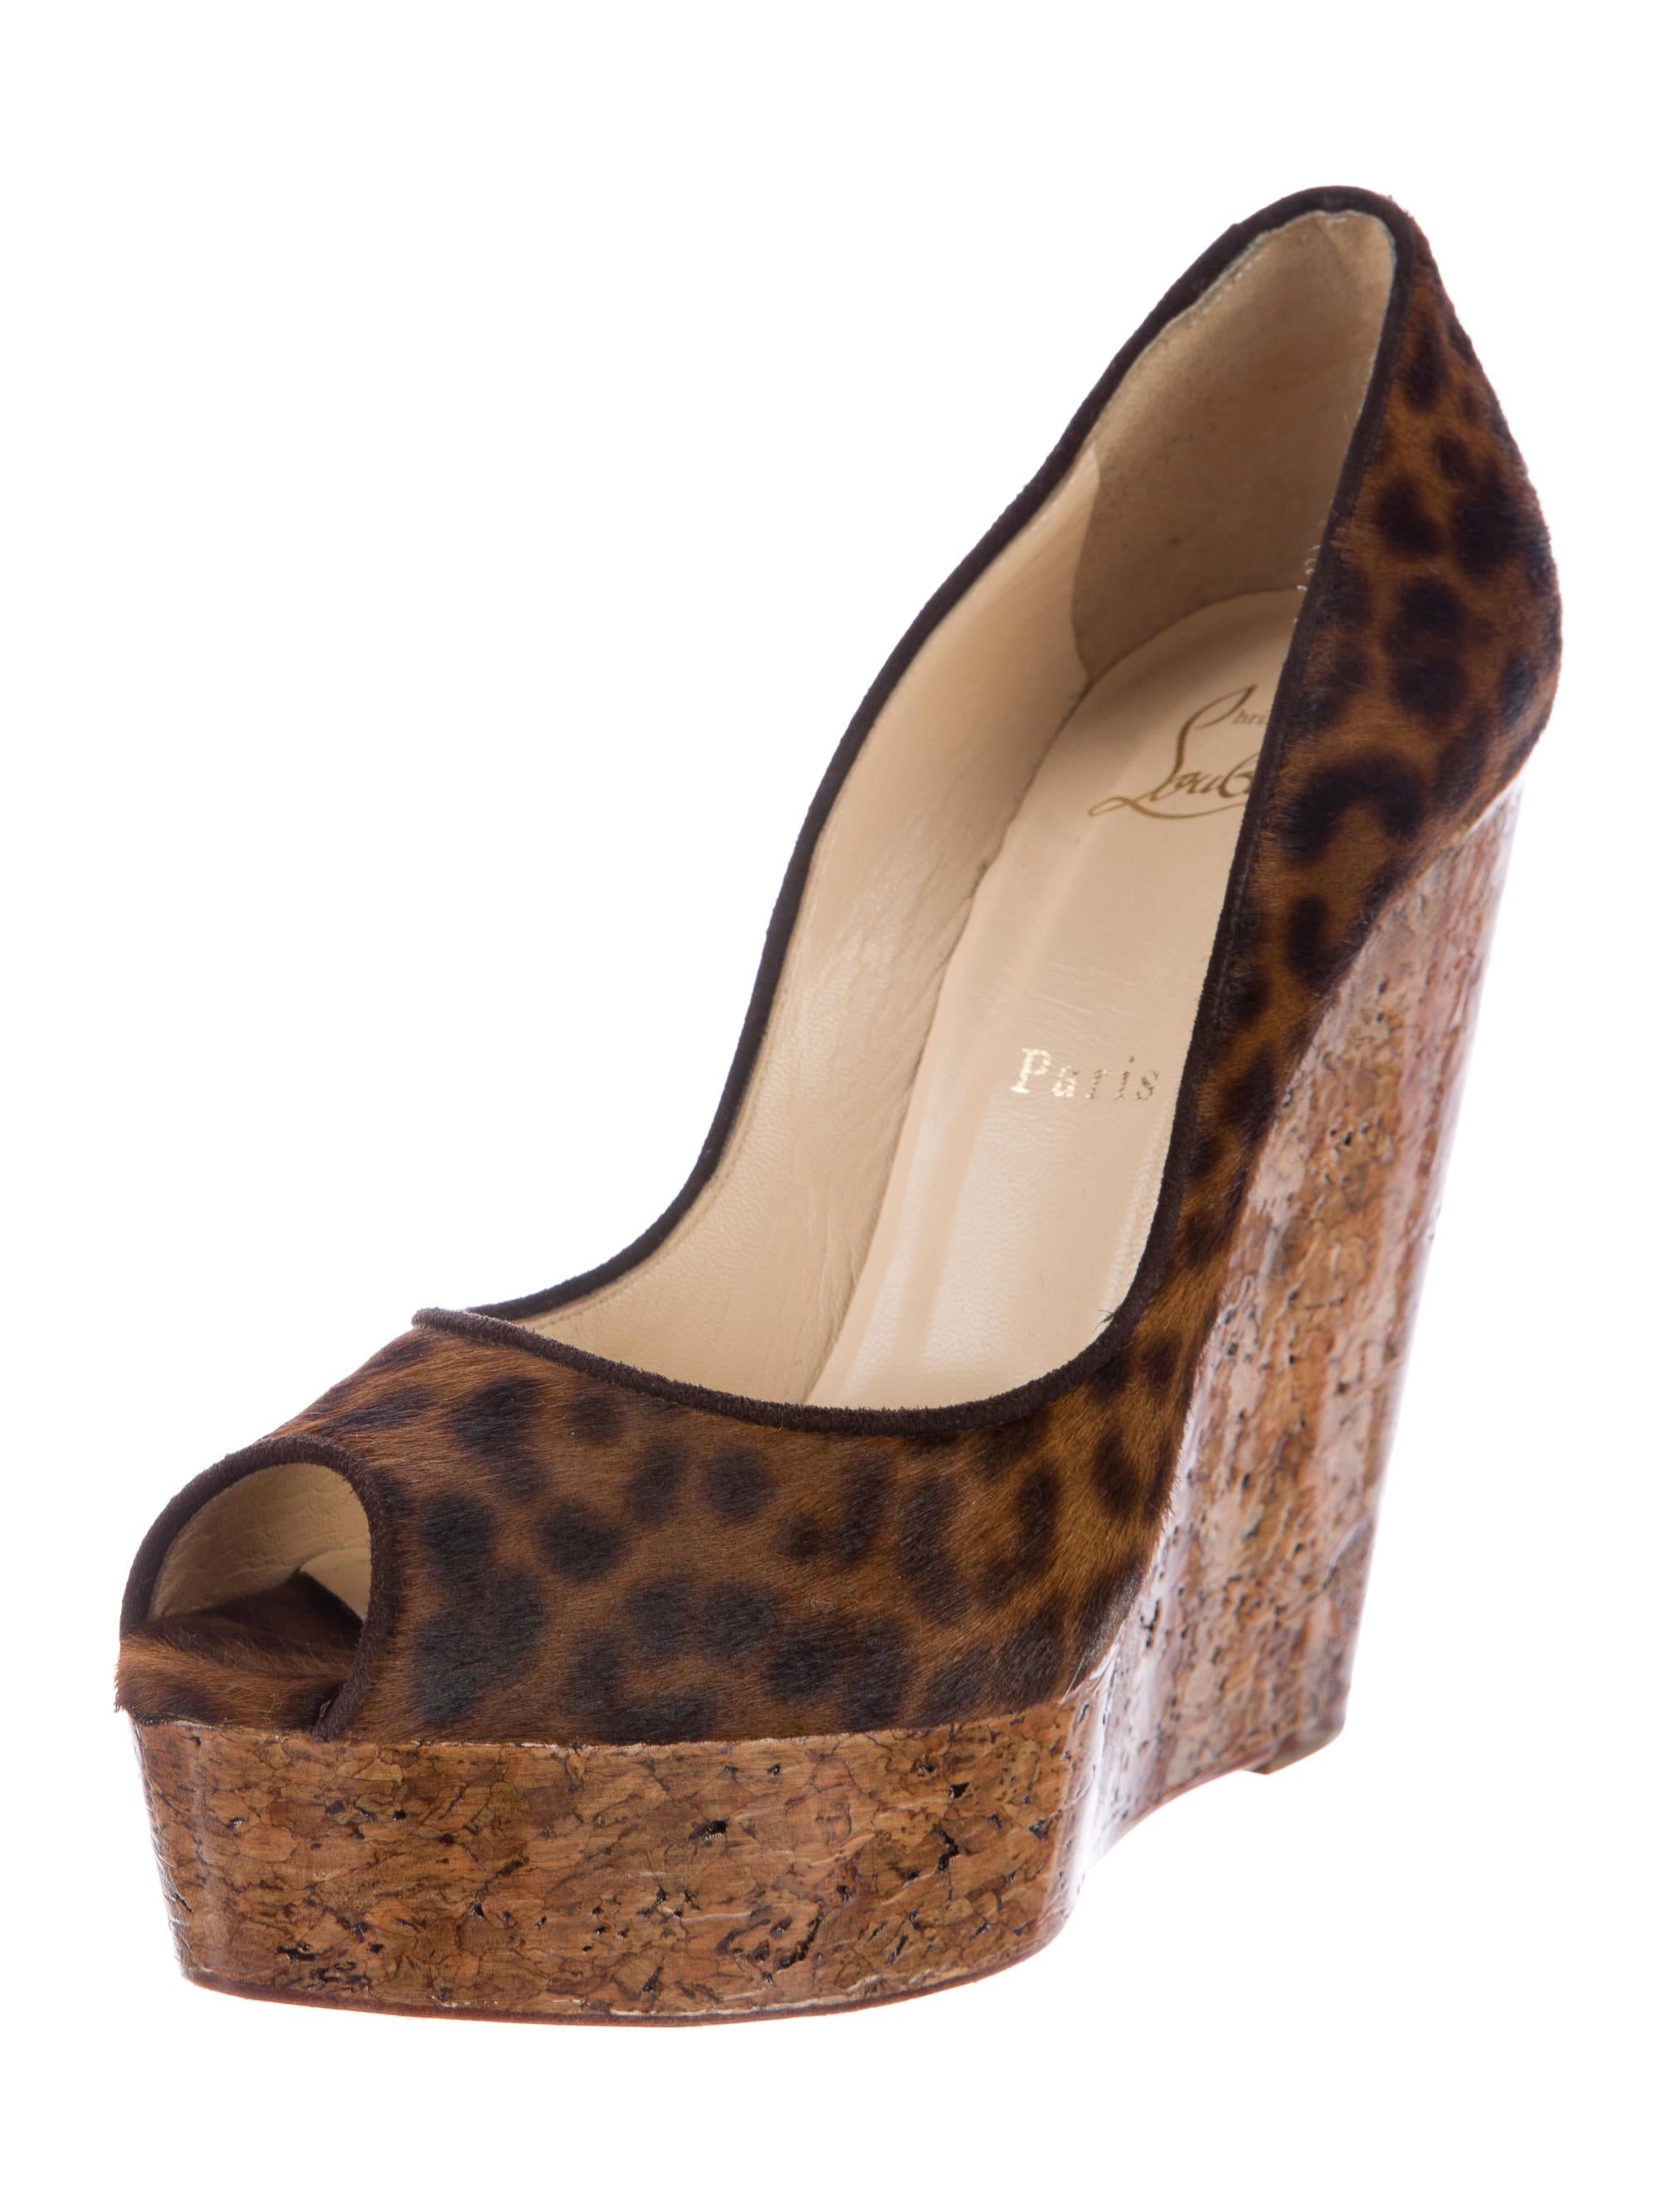 AliExpress carries many leopard print high heels related products, including leopard print necklace, walk harness, golden sneaker, leopard dog bed, bioaqua cleanser, brand pet, acid wash, velvet dog, leopard print boot.